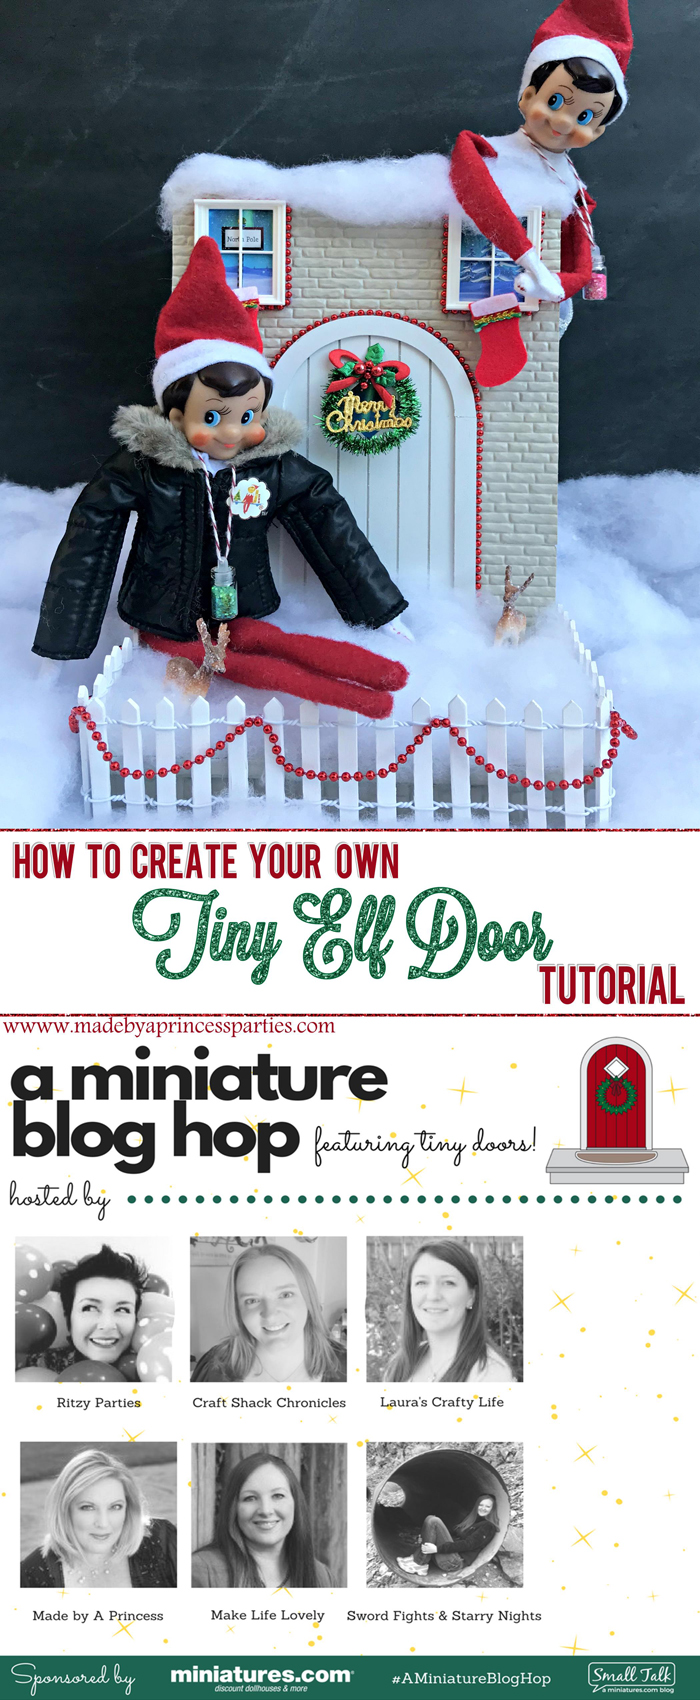 How to Create Your Own Tiny Elf Door Tutorial Elf on the Shelf Blog Hop MadebyaPrincess #elfdoor #fairydoor #elfdoorkit